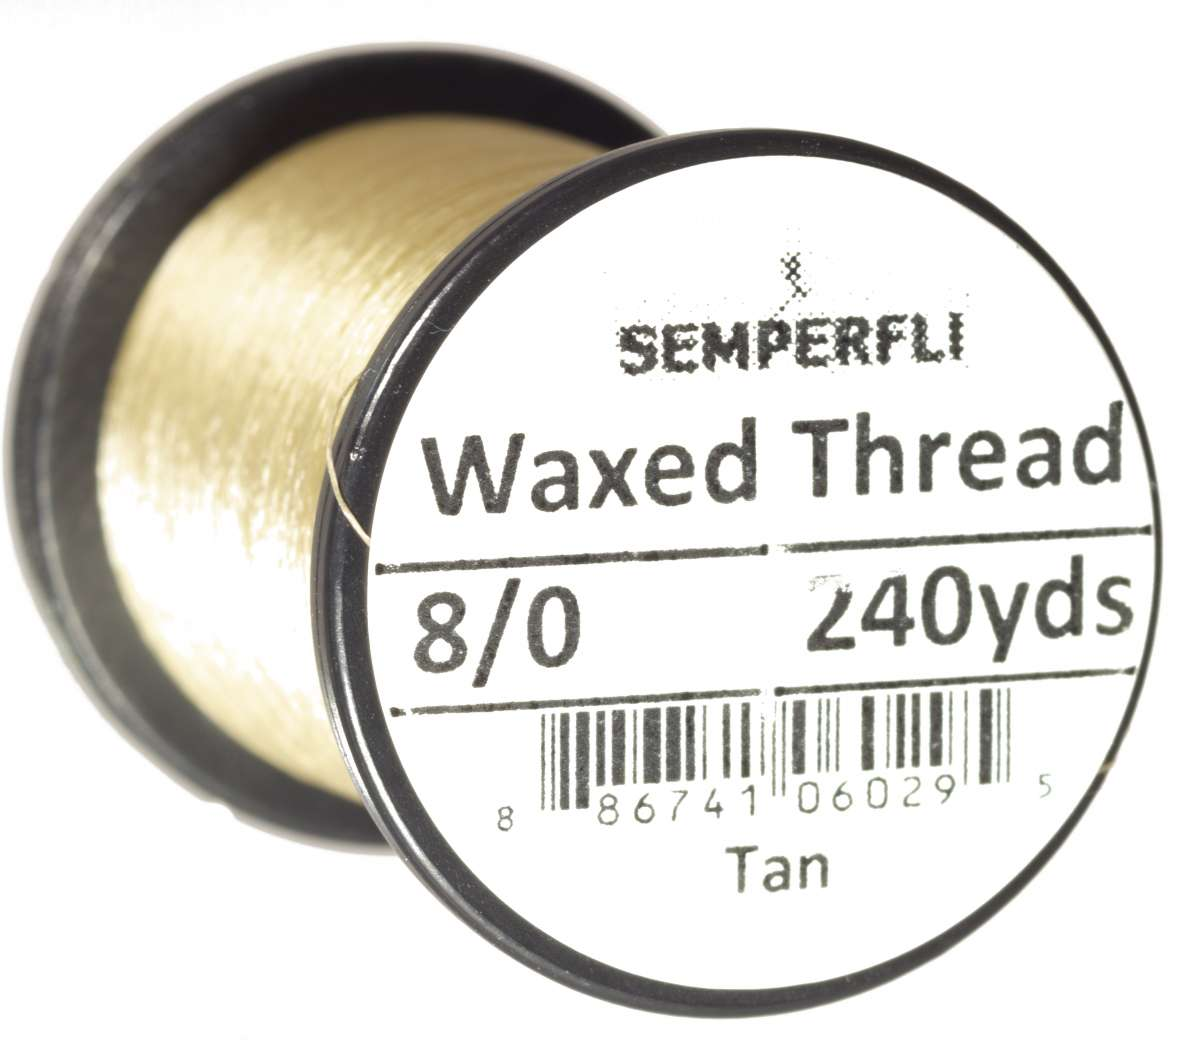 8/0 Classic Waxed Thread Tan Sem-0400-1536